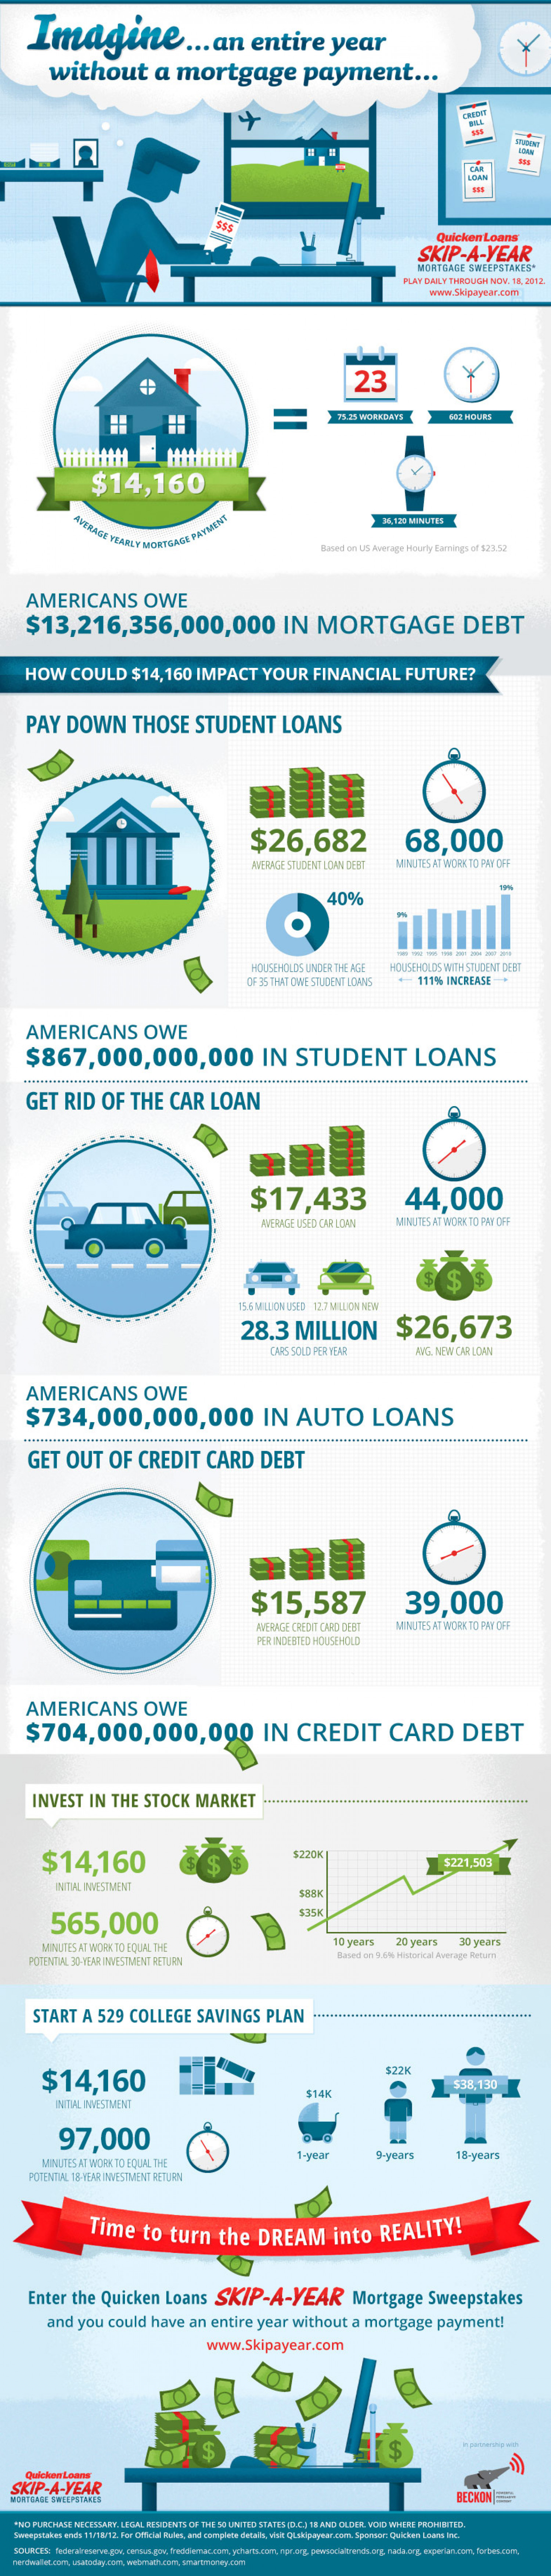 Imagine an Entire Year Without a Mortgage Payment Infographic